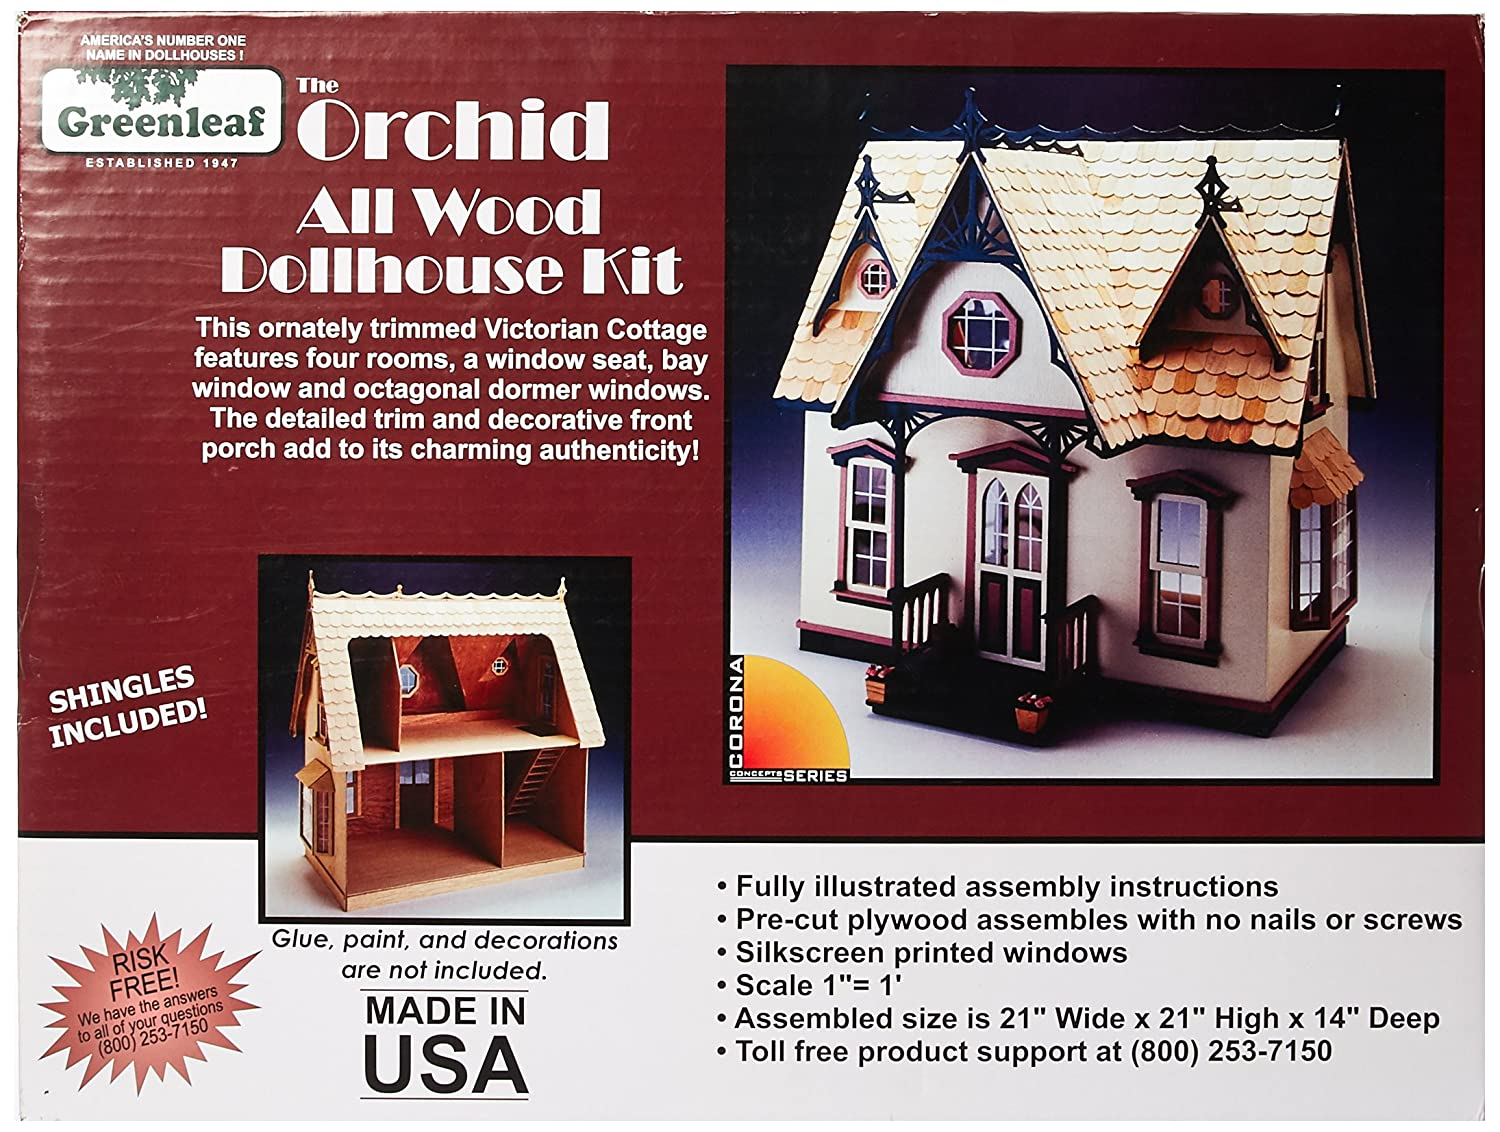 Greenleaf Corona Dollhouse Kit, Orchid (9301G) on metal shop house plans, ranch house plans, lowe's house plans, belk house plans, marriott house plans, small 3 bedrooms house plans, house floor plans, walk out basement house plans, amazon house plans, hallmark house plans, single story house plans, carter lumber house plans, secret passage house plans, do it best house plans, loft house plans, pottery barn house plans, brady house plans, simple 4 bedroom house plans, ebay house plans, ikea house plans,